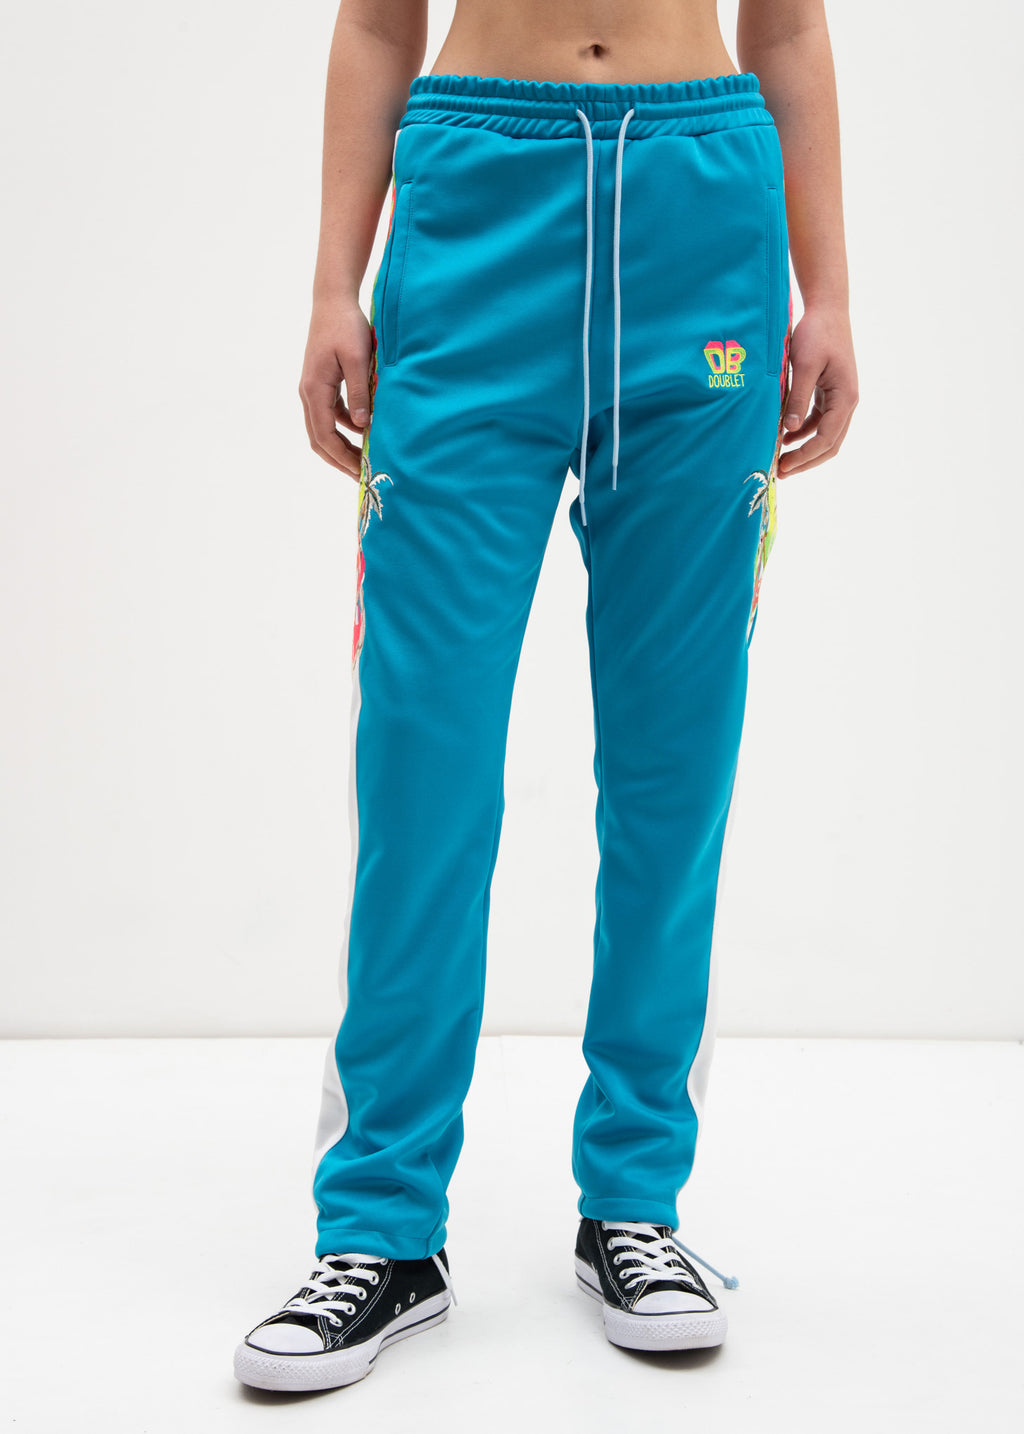 Light Blue Chaos Embroidery Track Pants